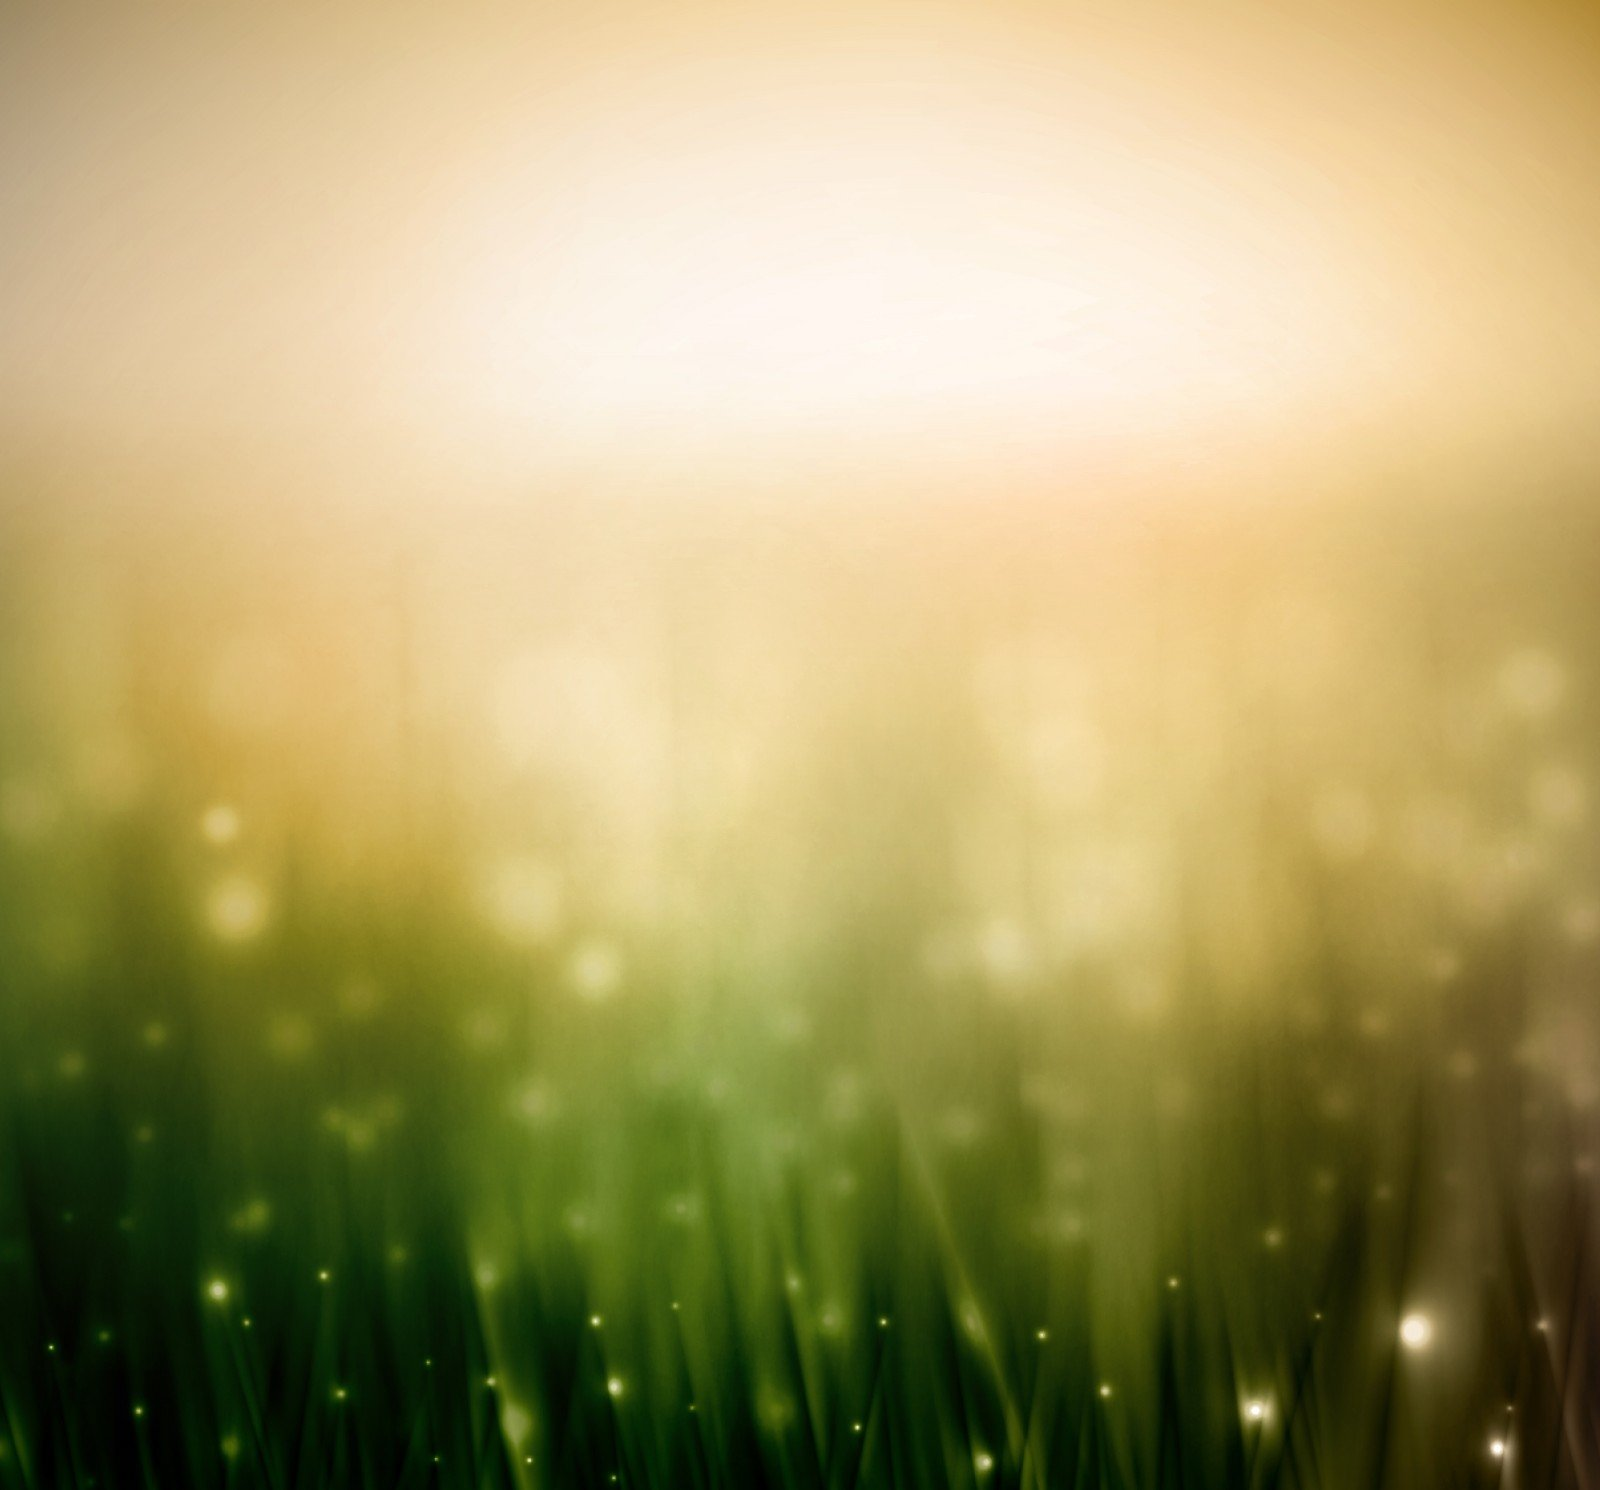 spring abstract background - photo #25